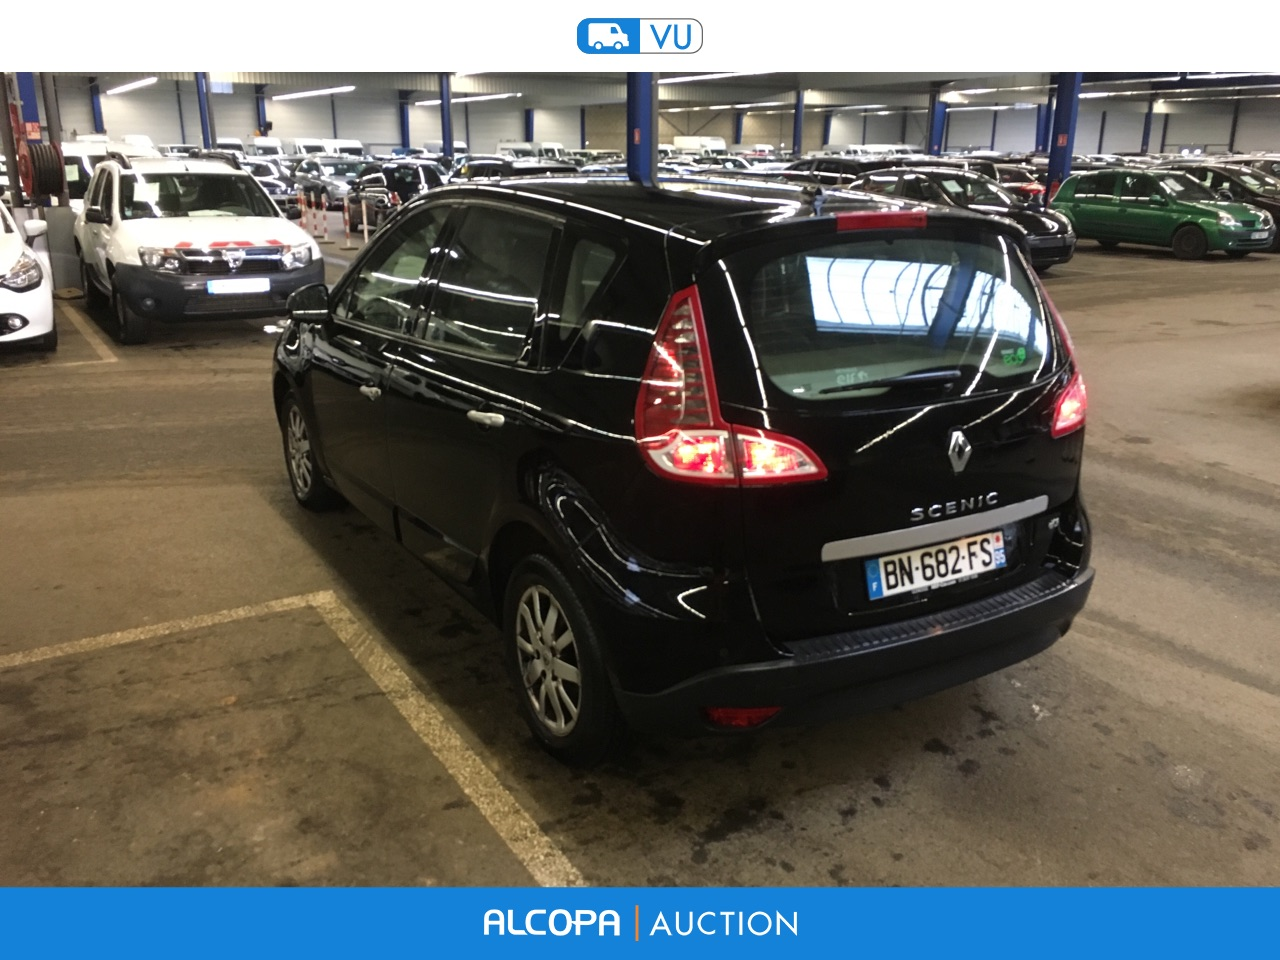 renault scenic scenic 1 5dci 110 edc beauvais alcopa auction. Black Bedroom Furniture Sets. Home Design Ideas